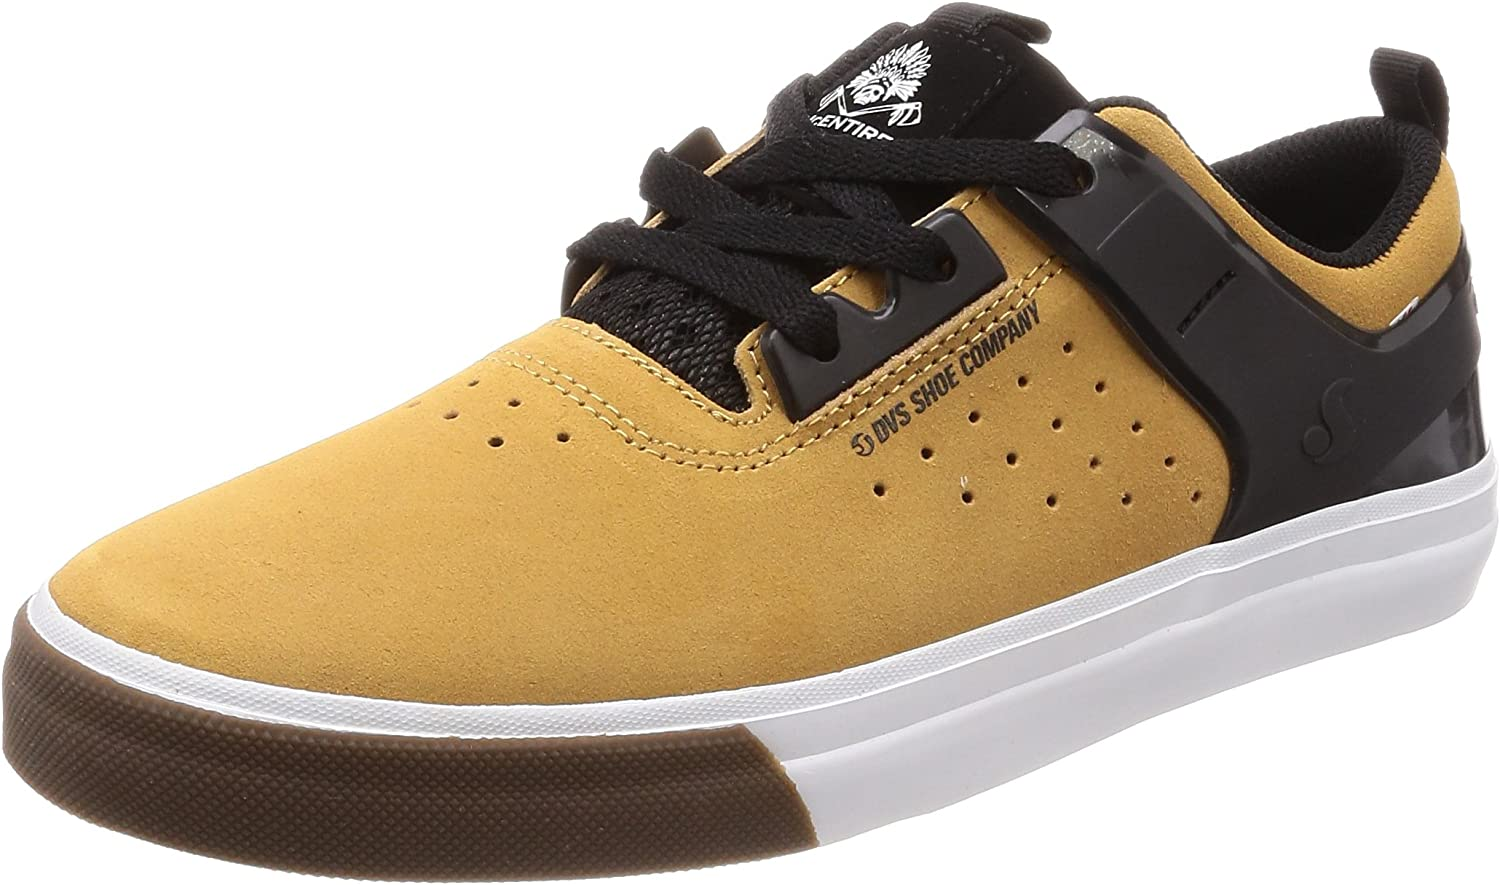 DVS Cinch CT + Chamois Suede McEntire shoes